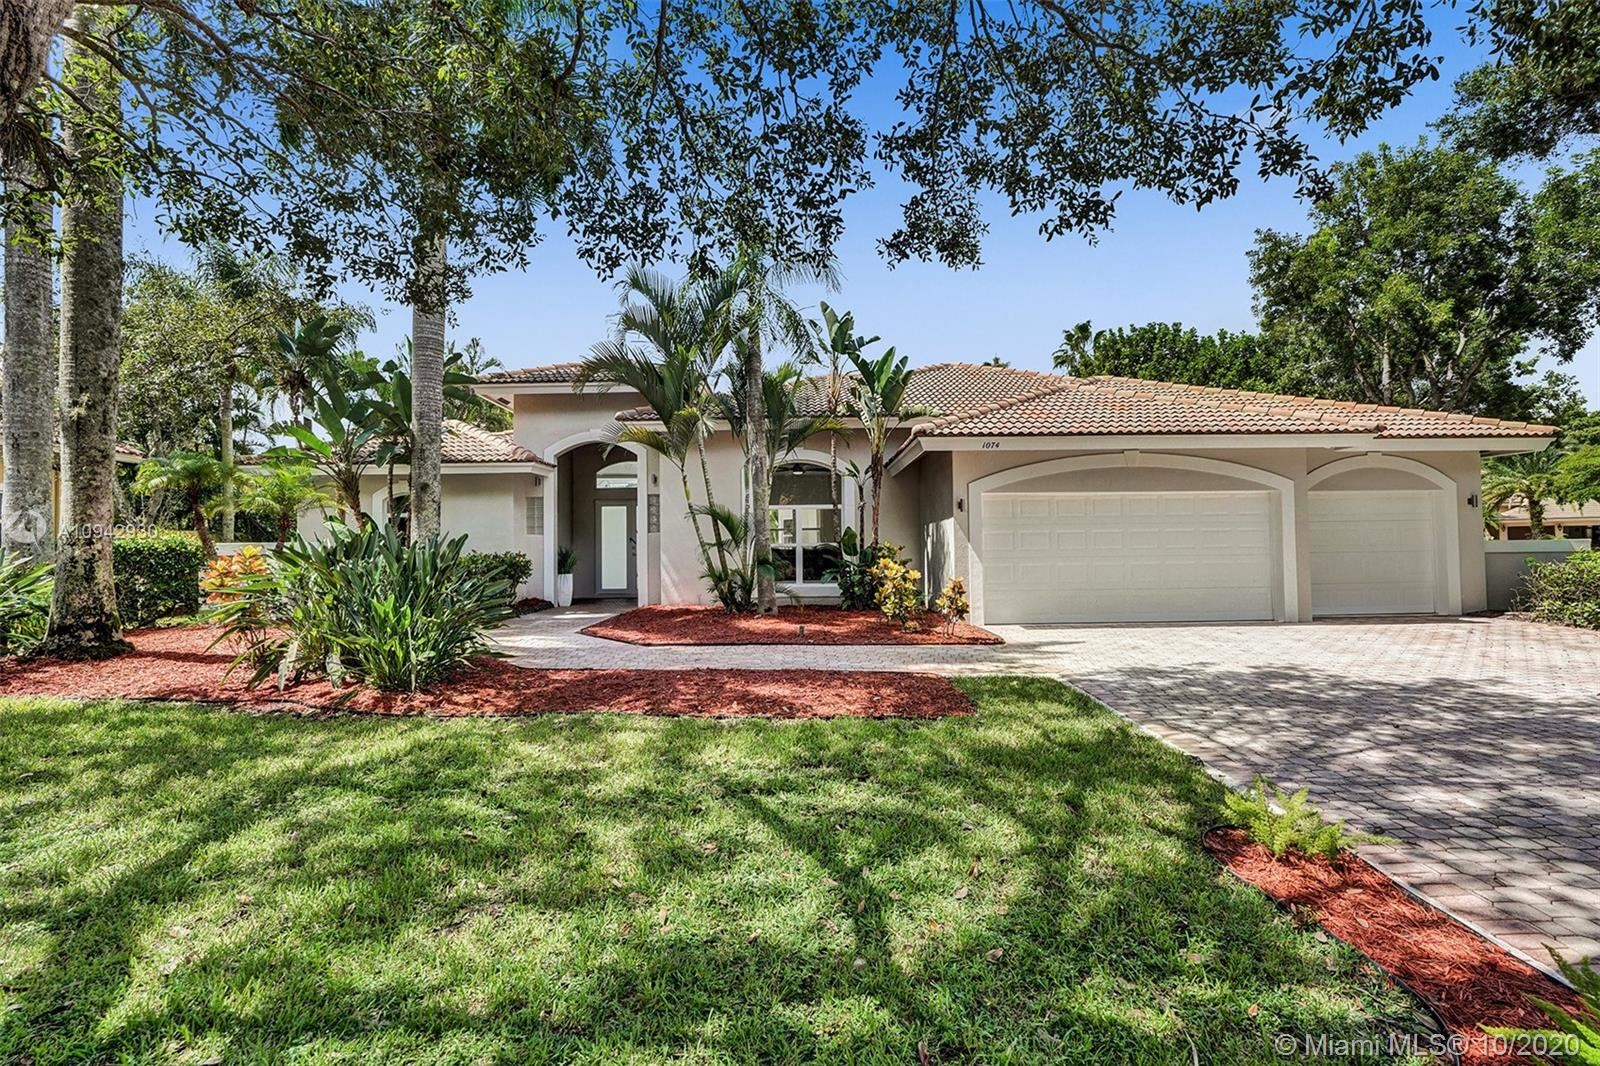 1074 NW 121st Ln, Coral Springs, FL 33071 - #: A10942930